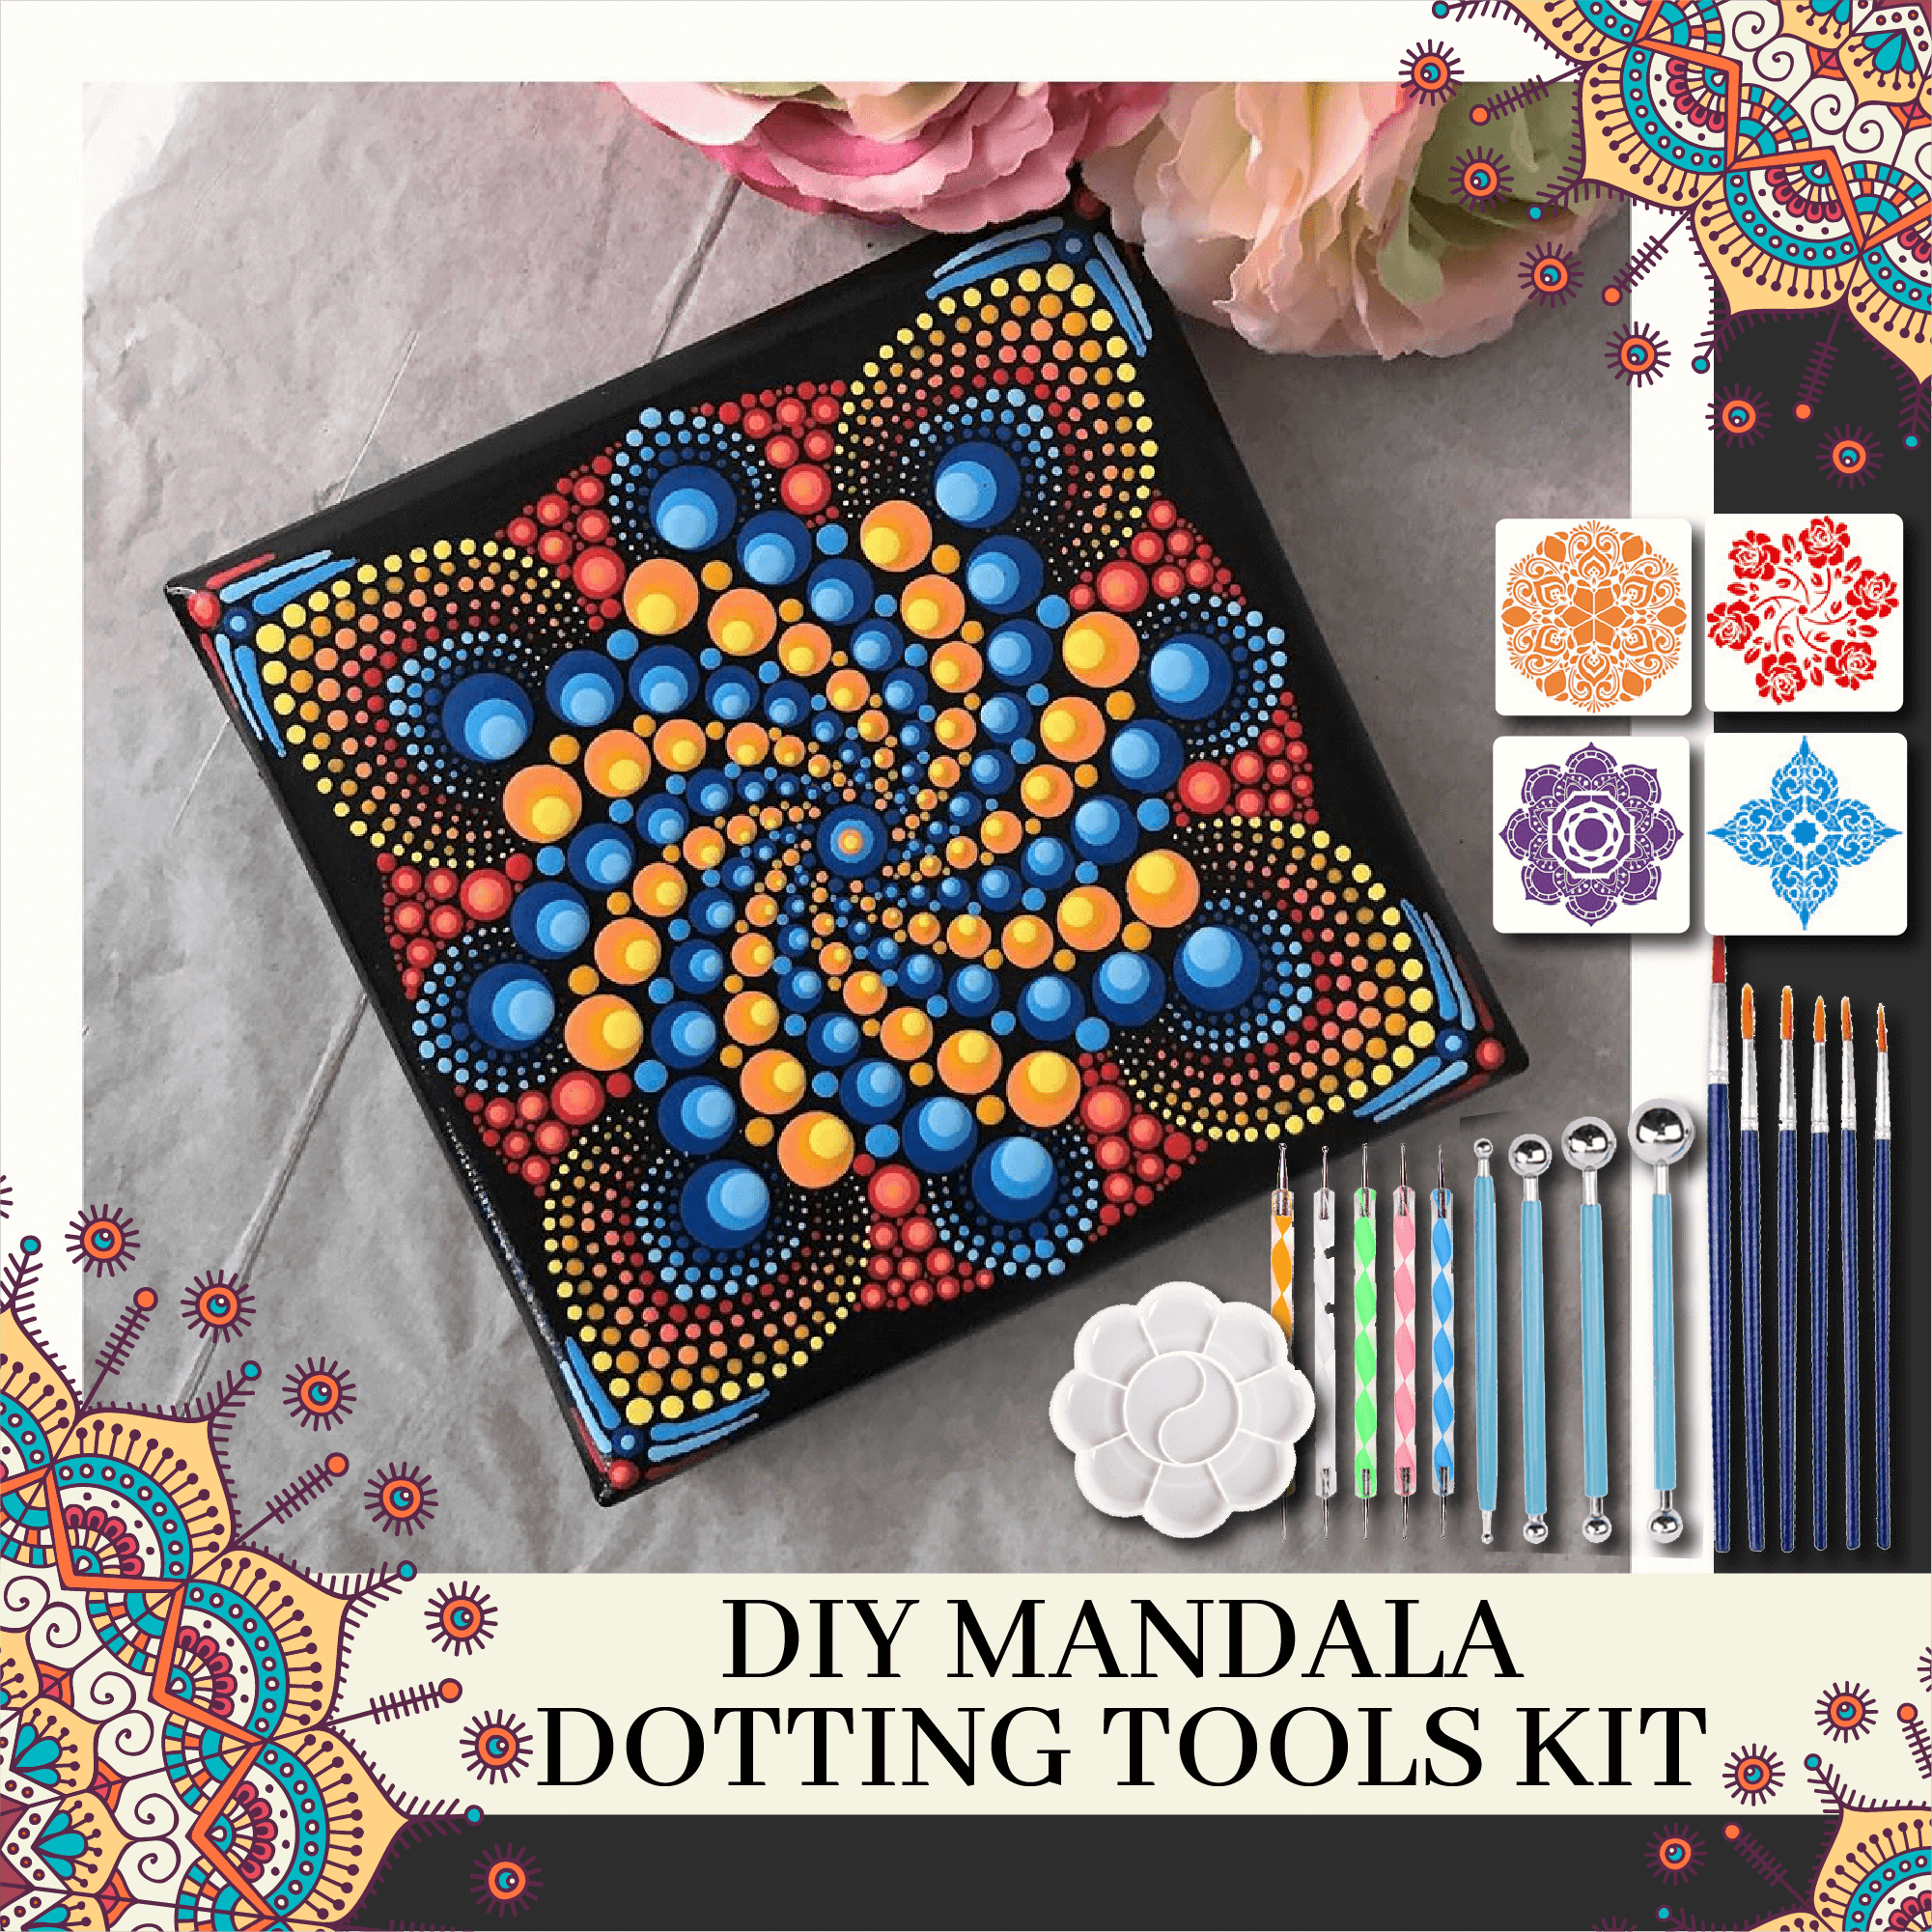 DIY Mandala Dotting Tools Kit